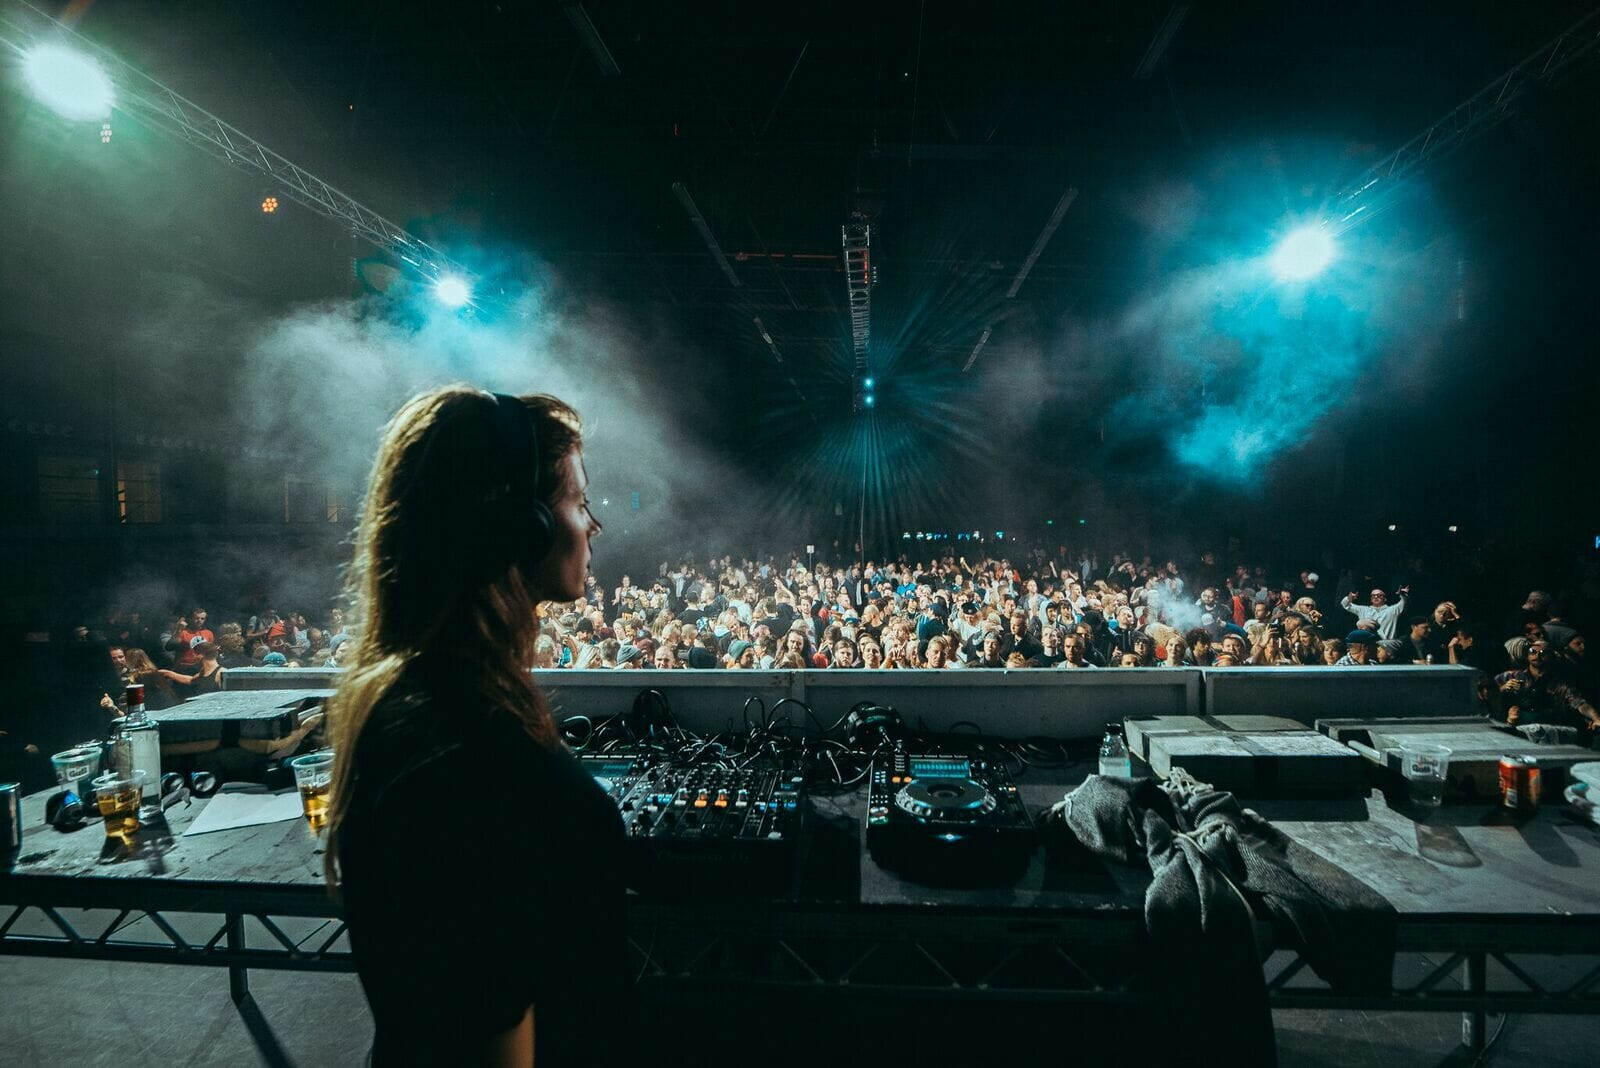 STREAM NOW: Charlotte de Witte brings searing techno to Coachella